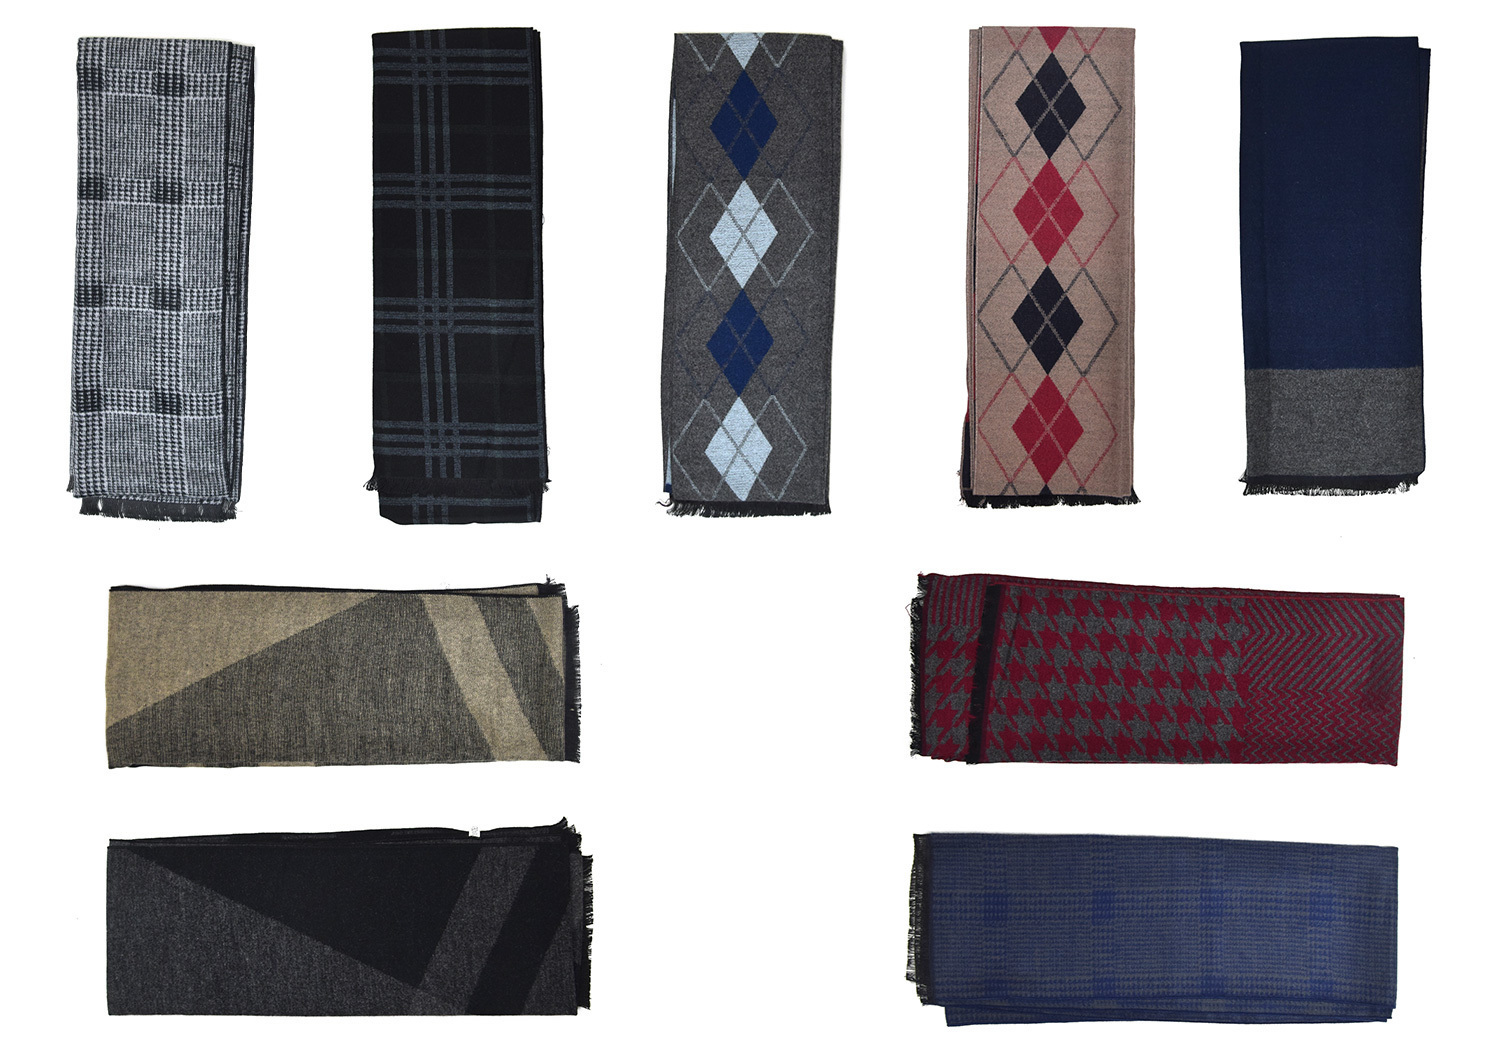 Case of [24] Men's Winter Scarves - Assorted Designs